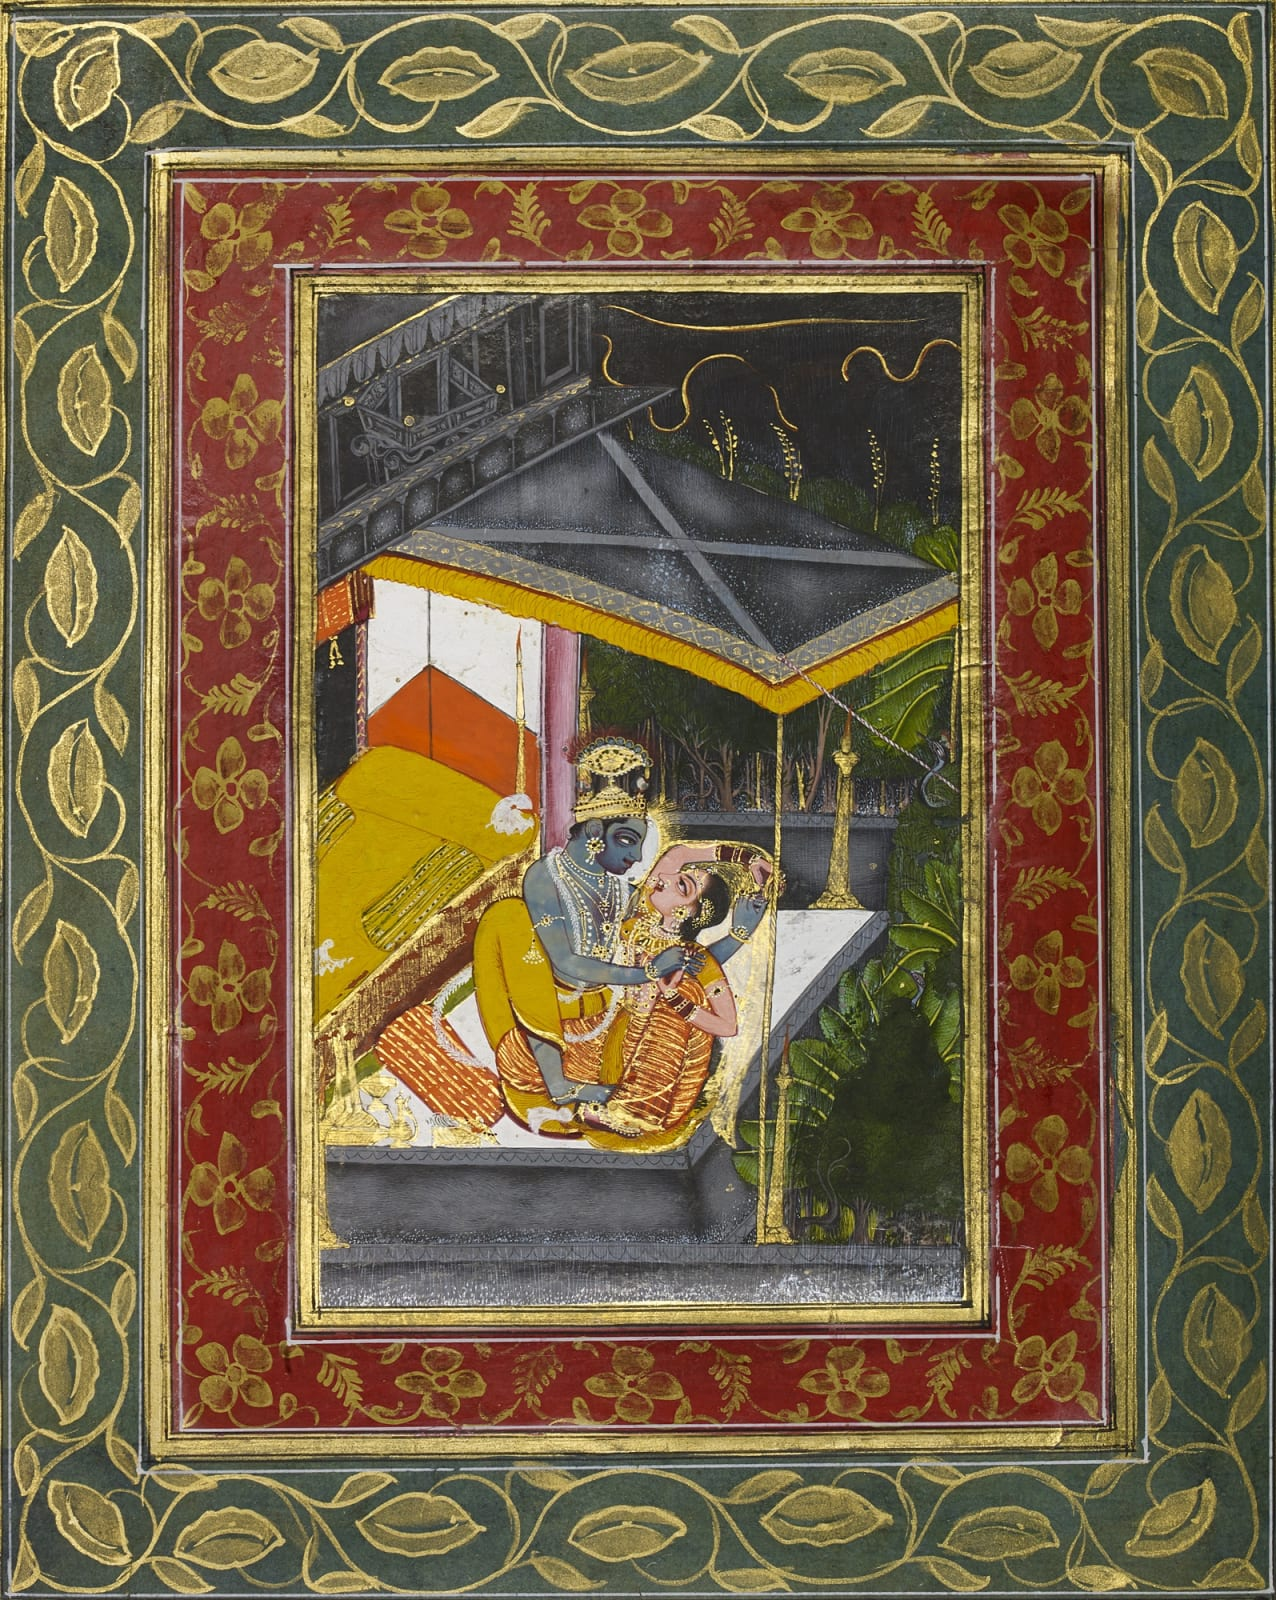 Night scene depicting Krishna and Radha in embrace – from a royal Kota-Jaipur Album, Kota, c.1720-30, possibly by master artist C